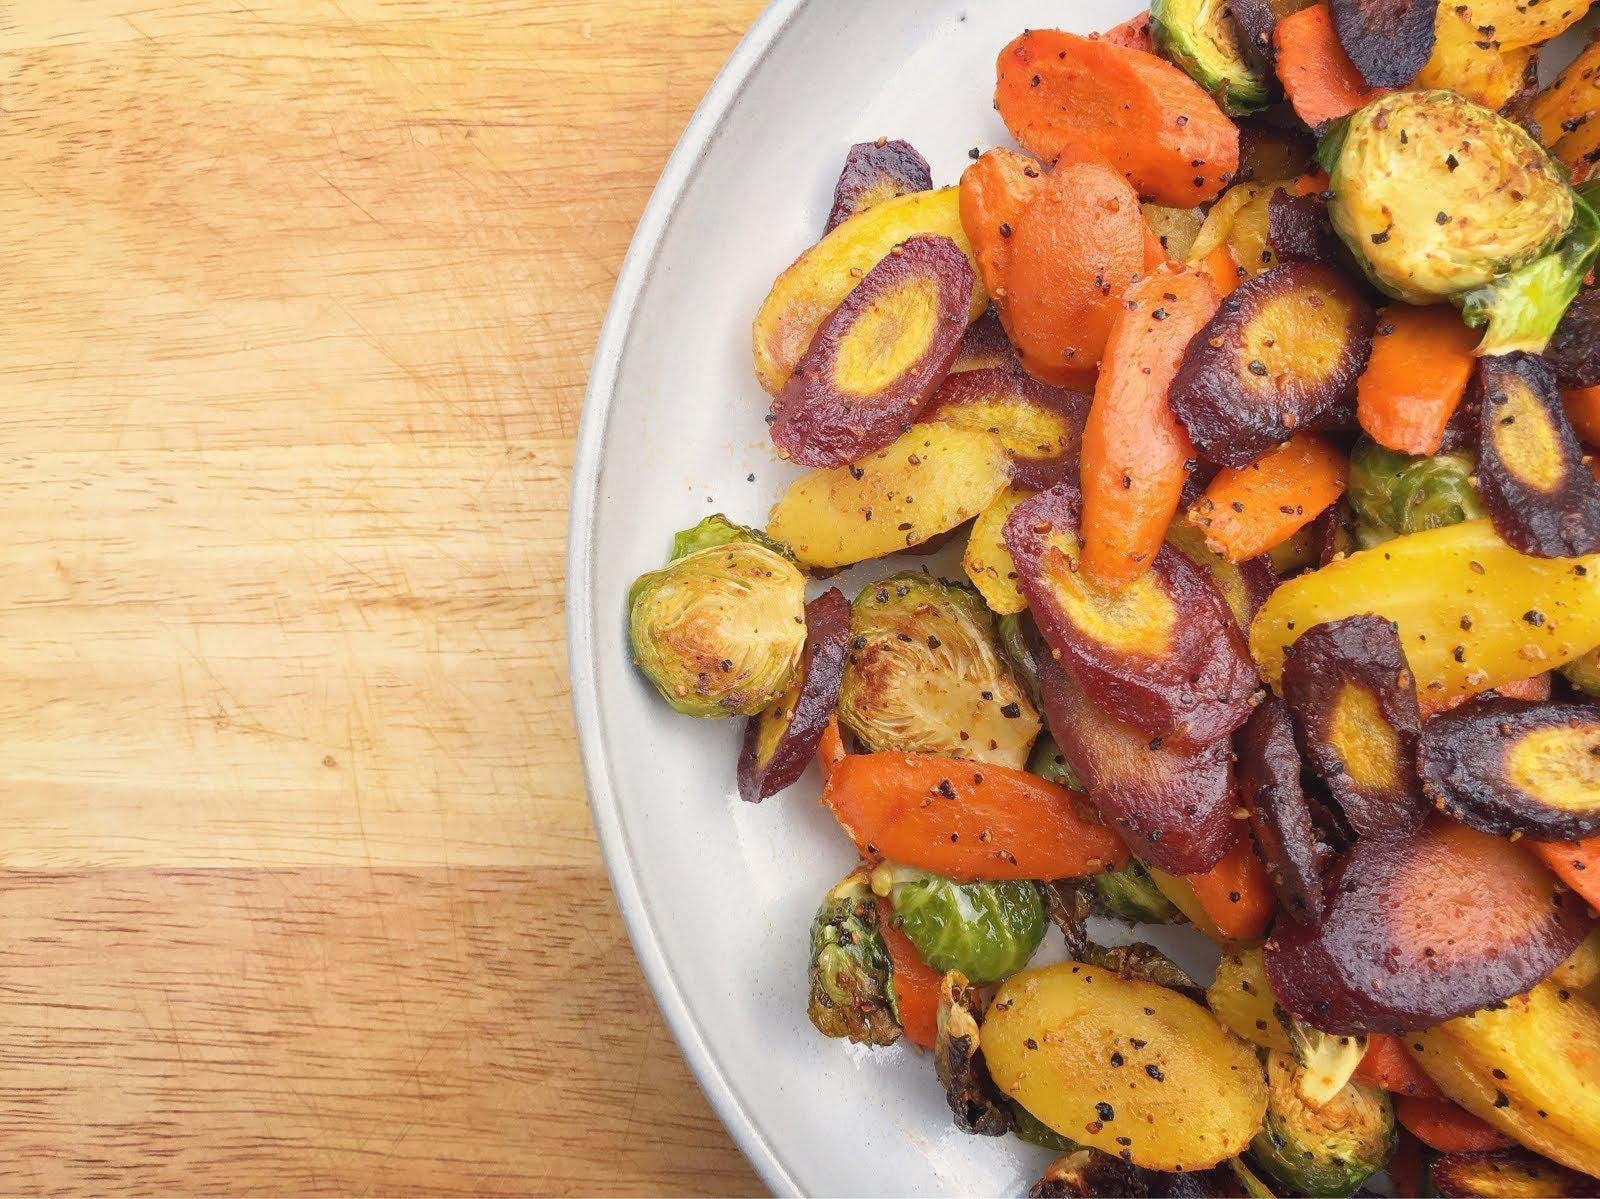 SMOKY, ROASTED VEGGIES